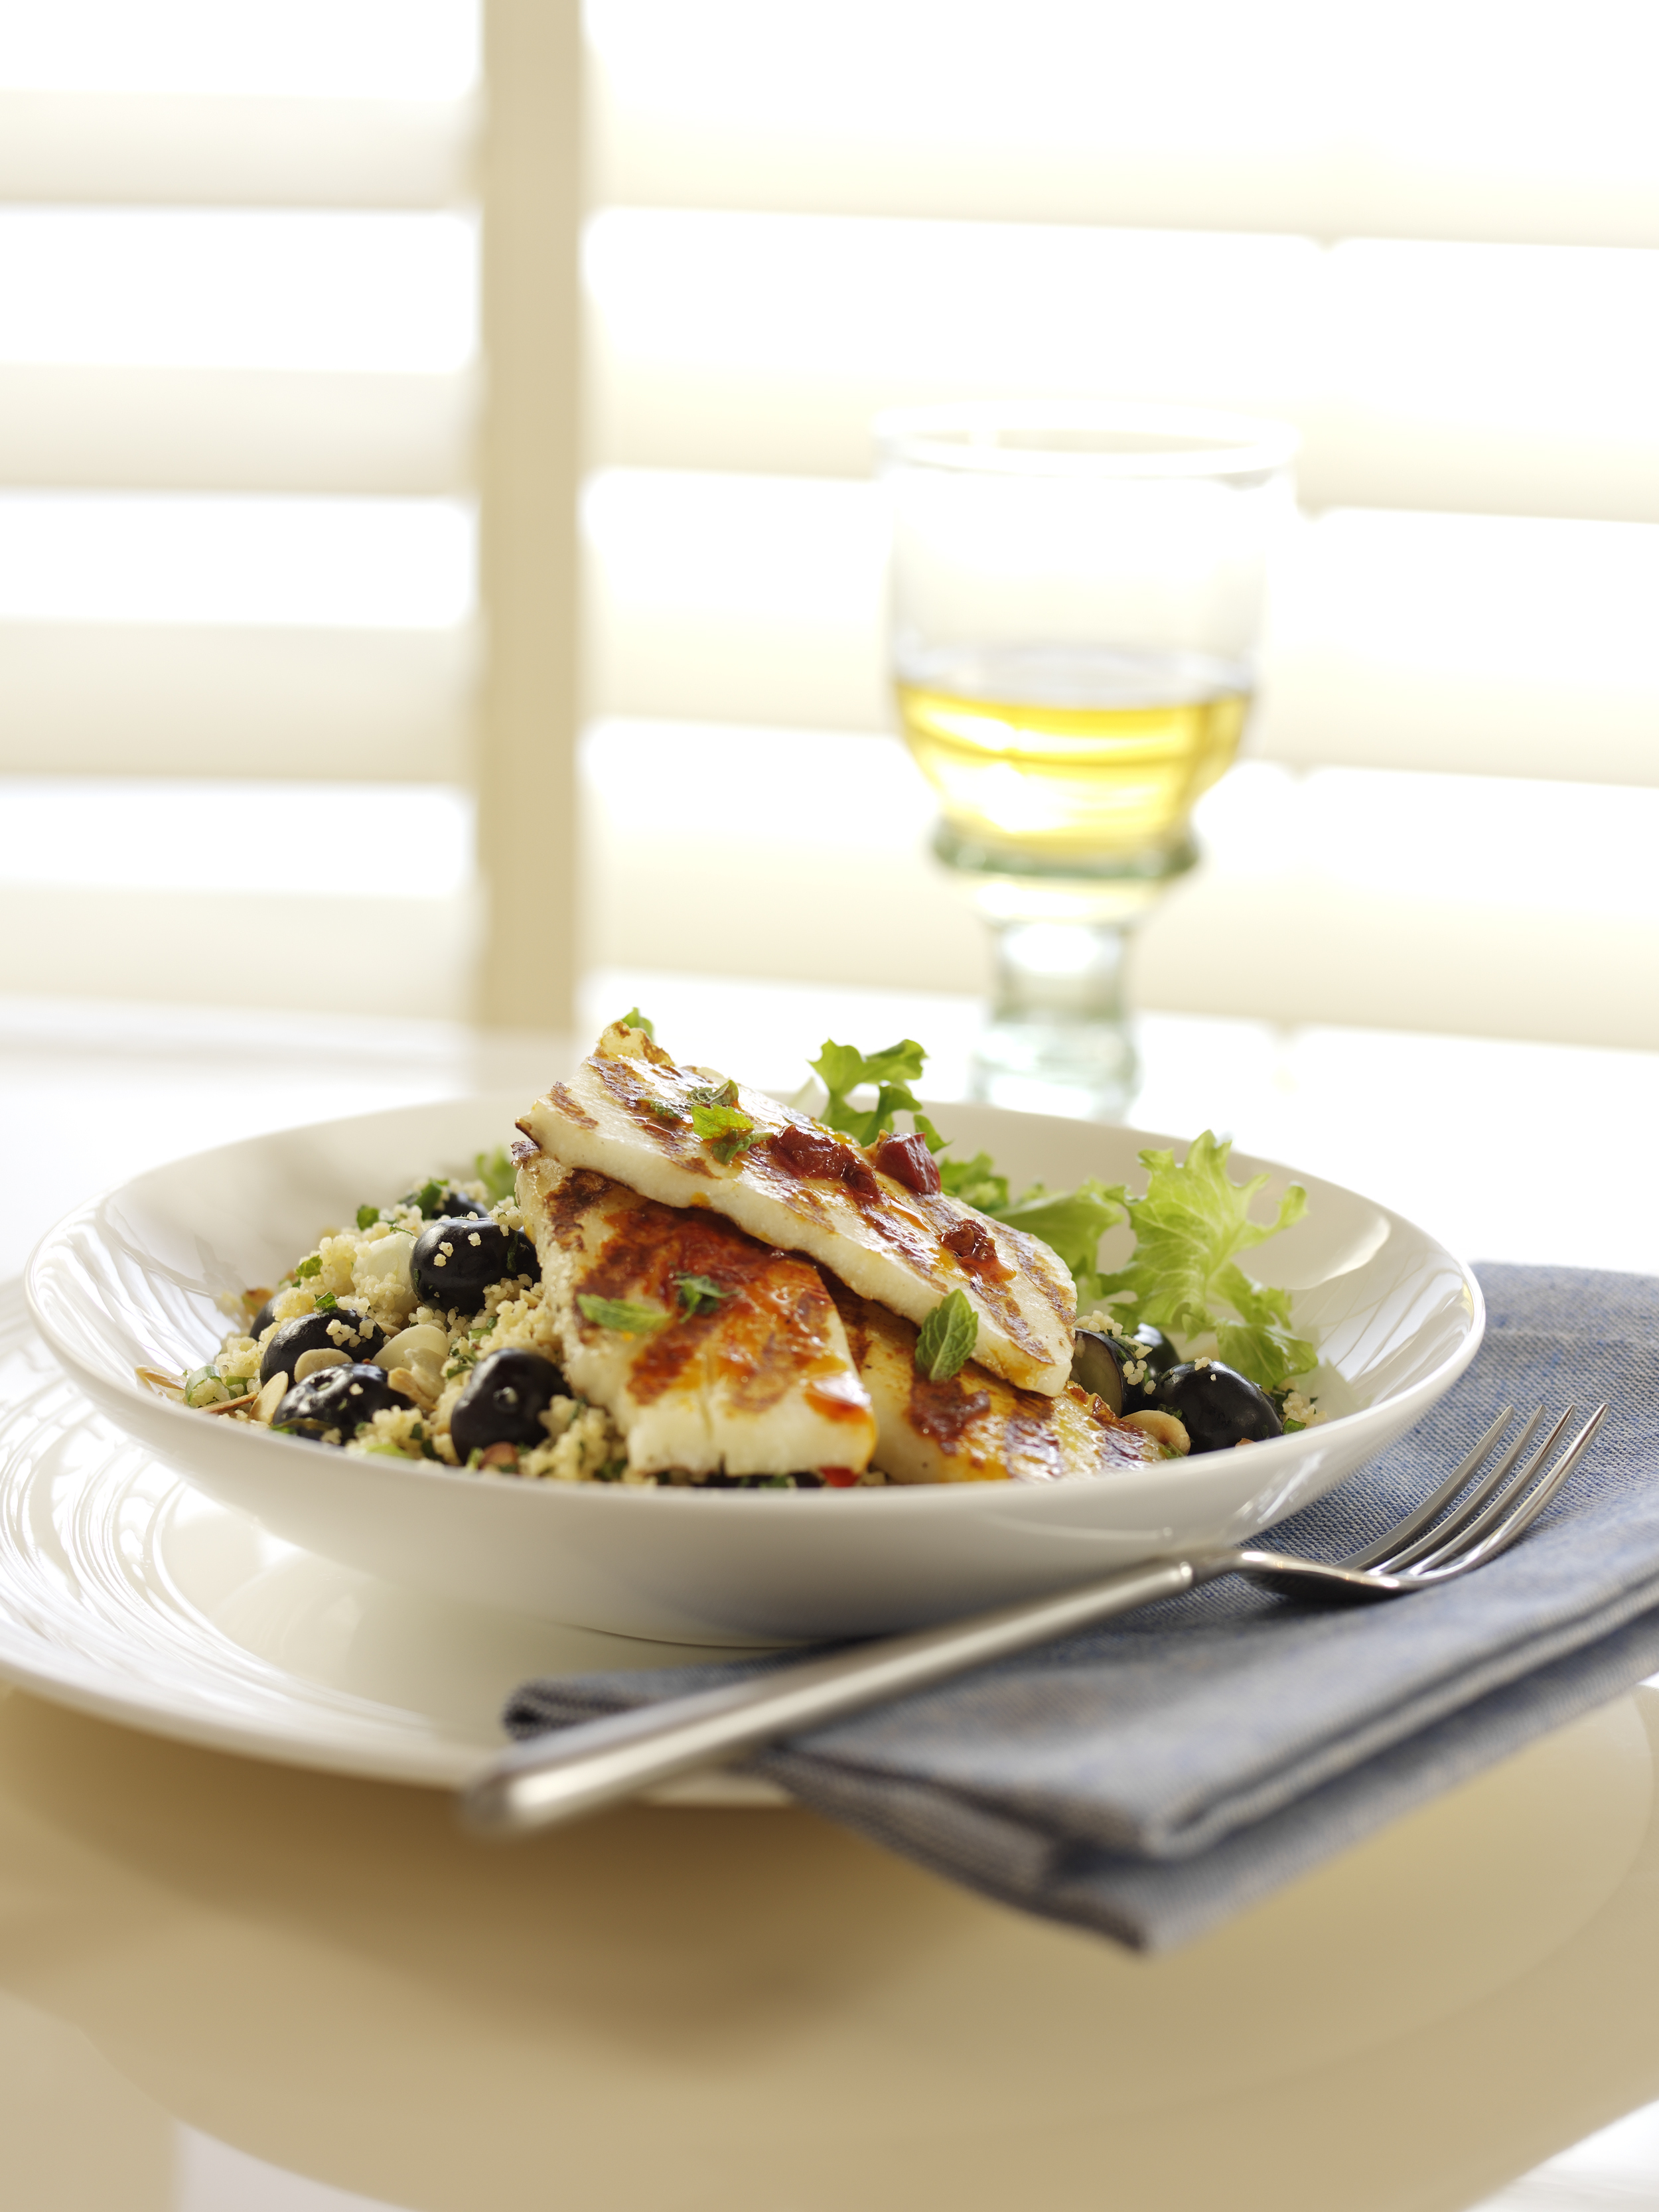 Griddled Harissa Marinated Halloumi with Berry World Blueberry Spring Onion and Toasted Almond Couscous 75istnxwa